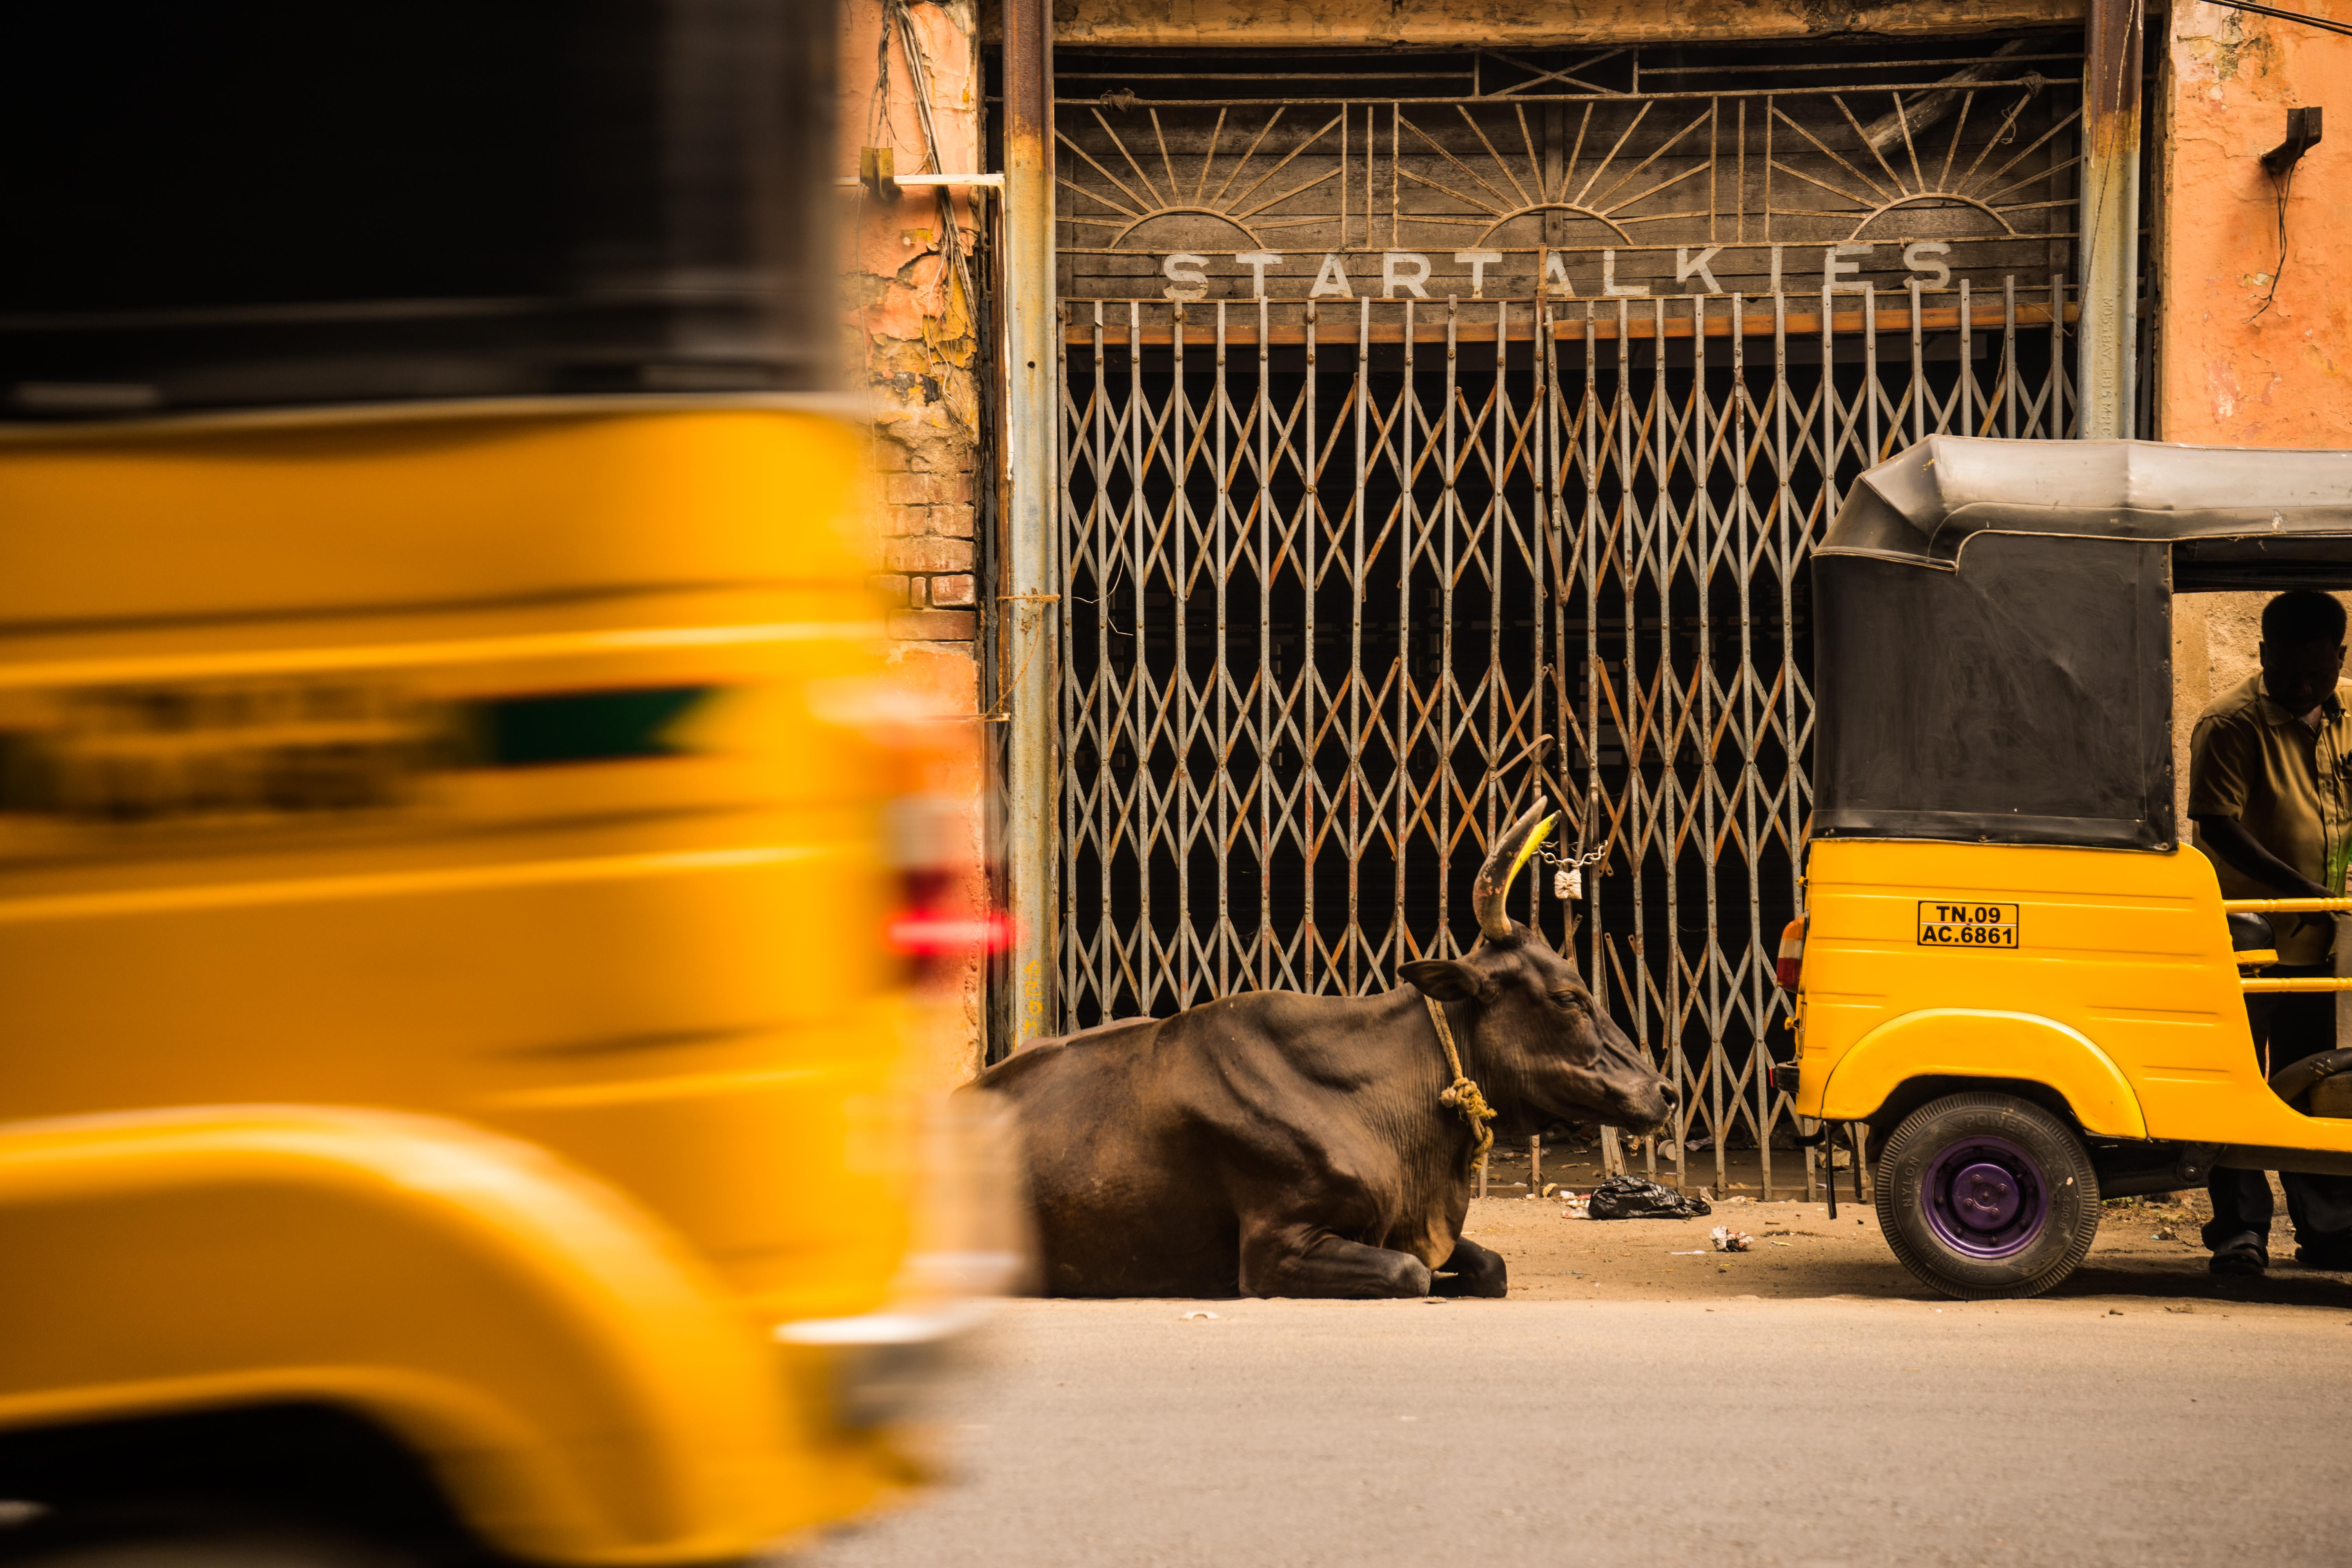 A cow sitting on the street in between two yellow rickshaws